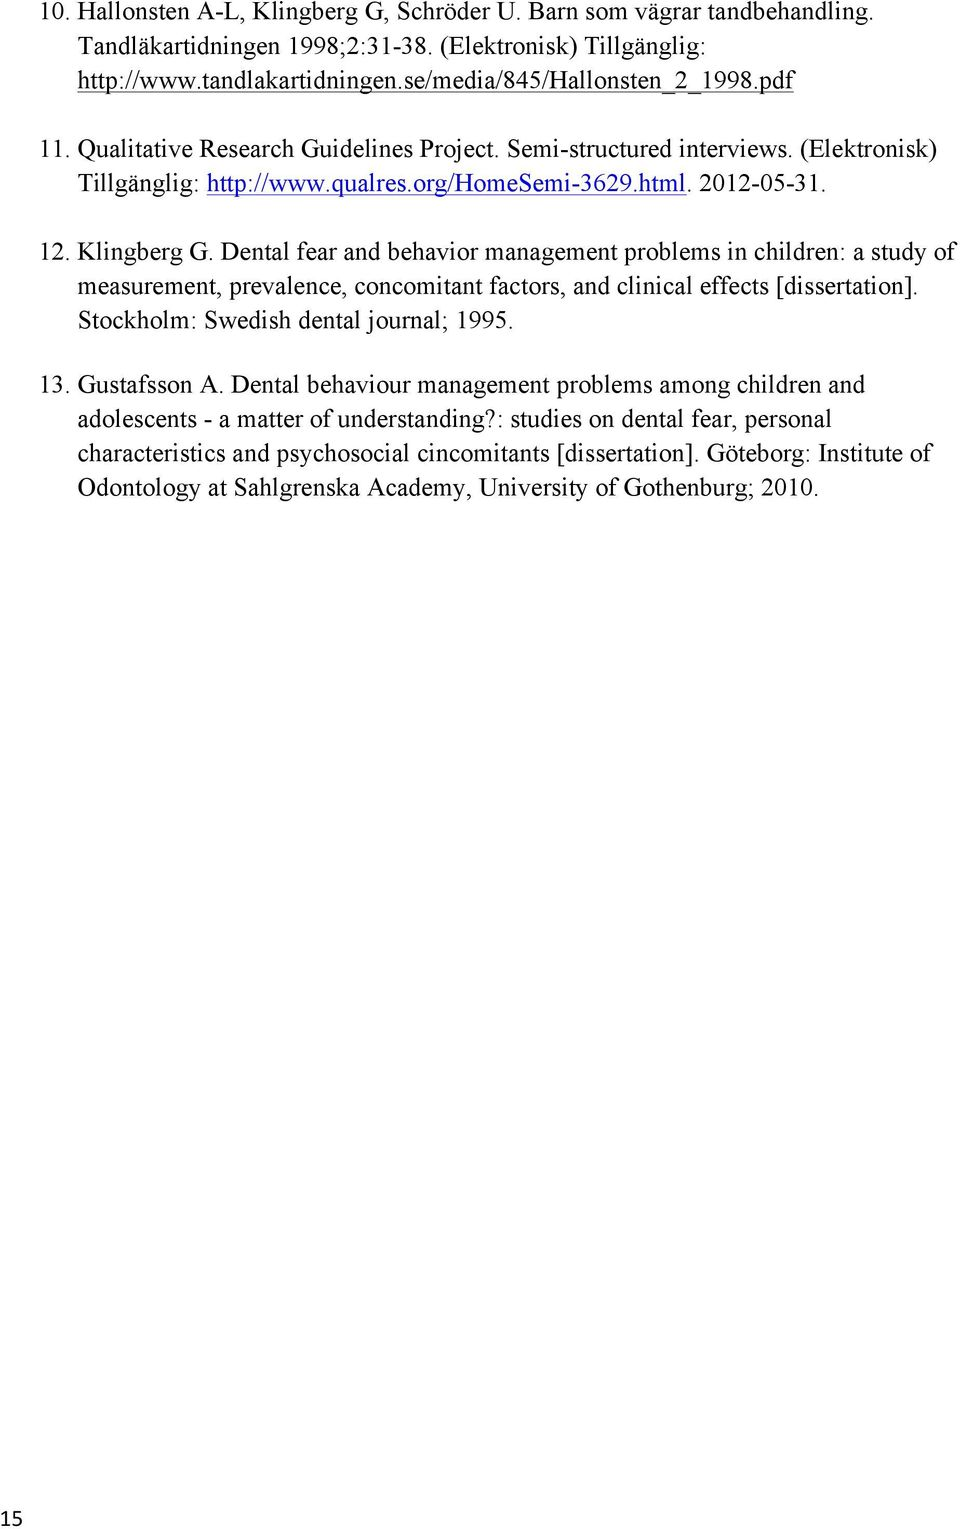 Dental fear and behavior management problems in children: a study of measurement, prevalence, concomitant factors, and clinical effects [dissertation]. Stockholm: Swedish dental journal; 1995. 13.